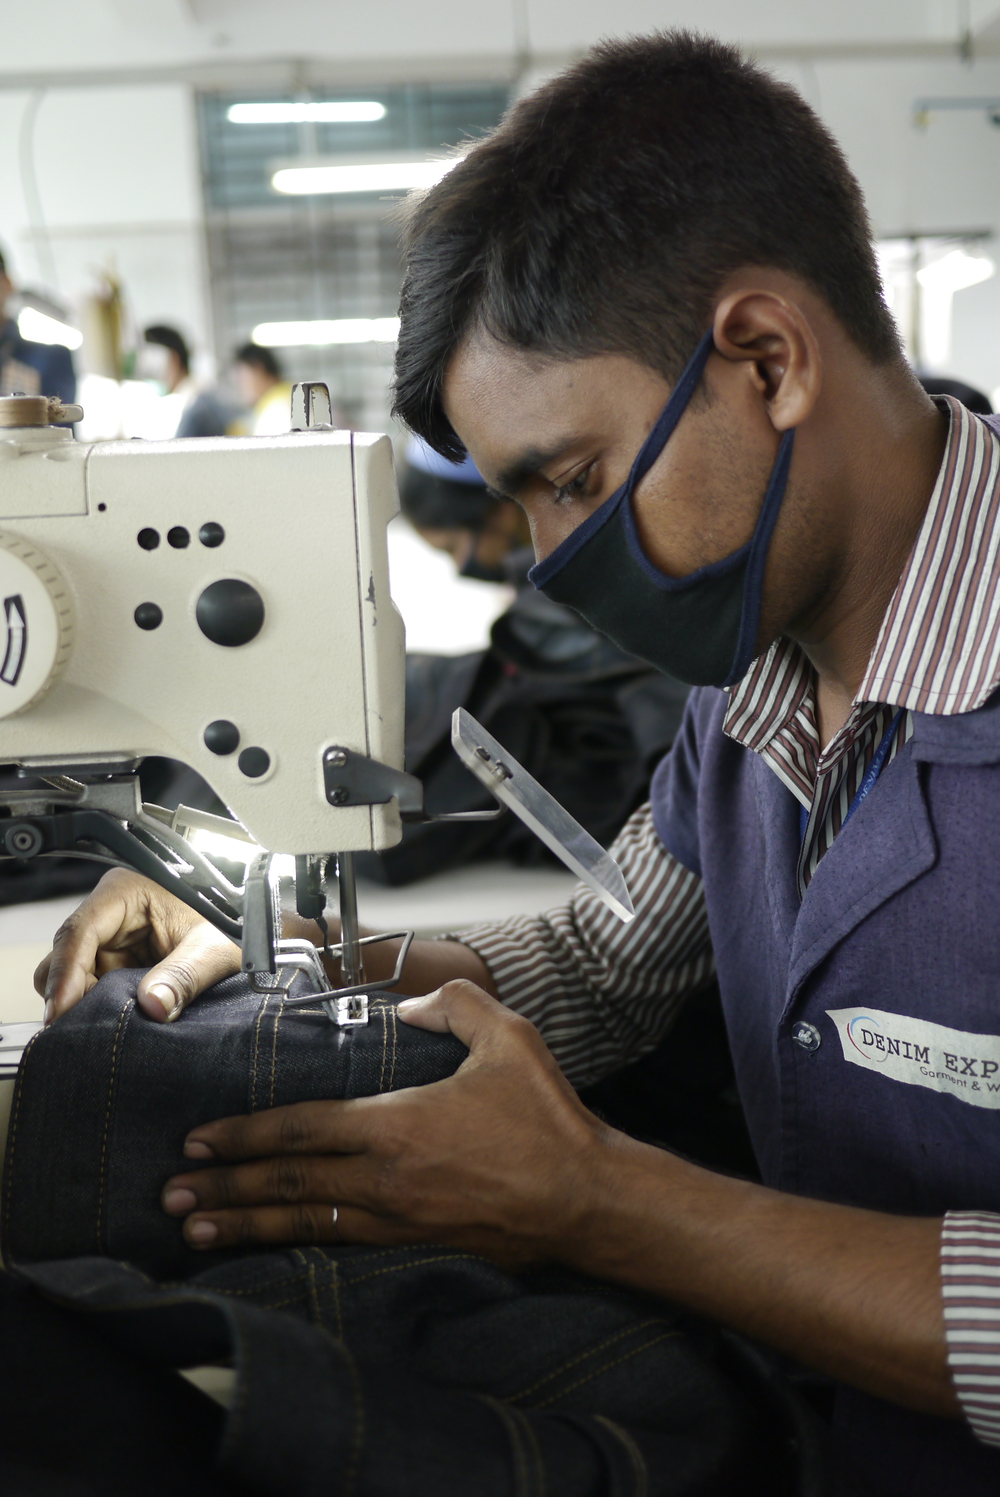 A worker at Denim Expert Limited, Photo by Sadia Rafique